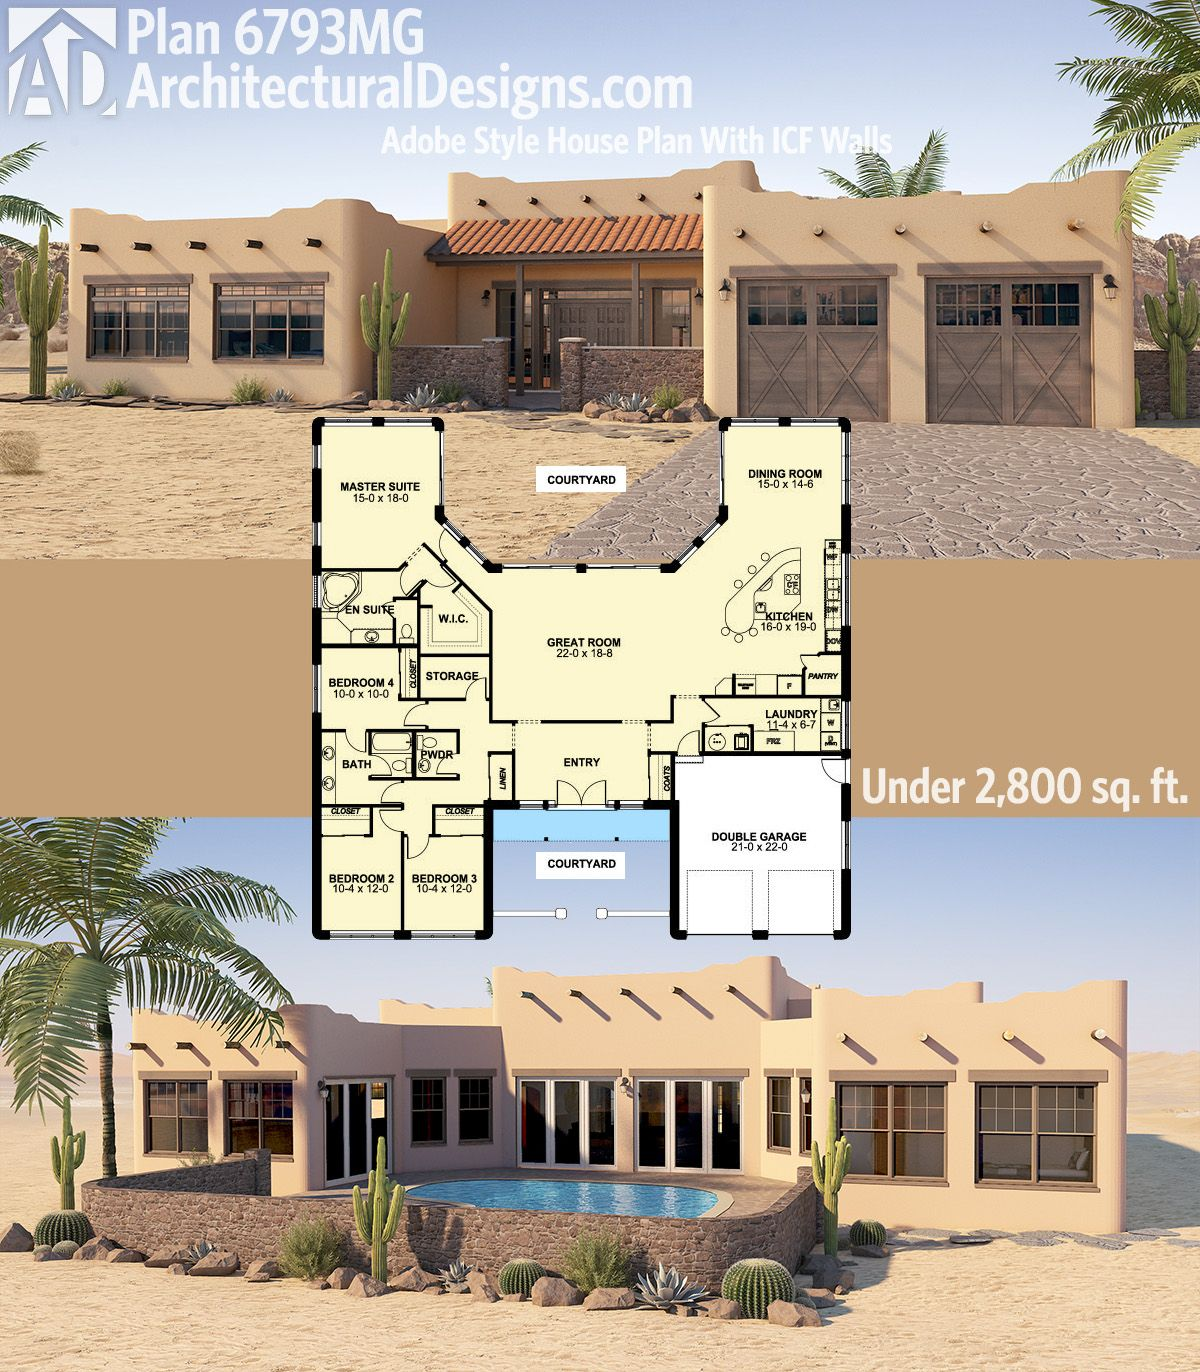 plan 6793mg adobe style house plan with icf walls - Adobe Style House Designs